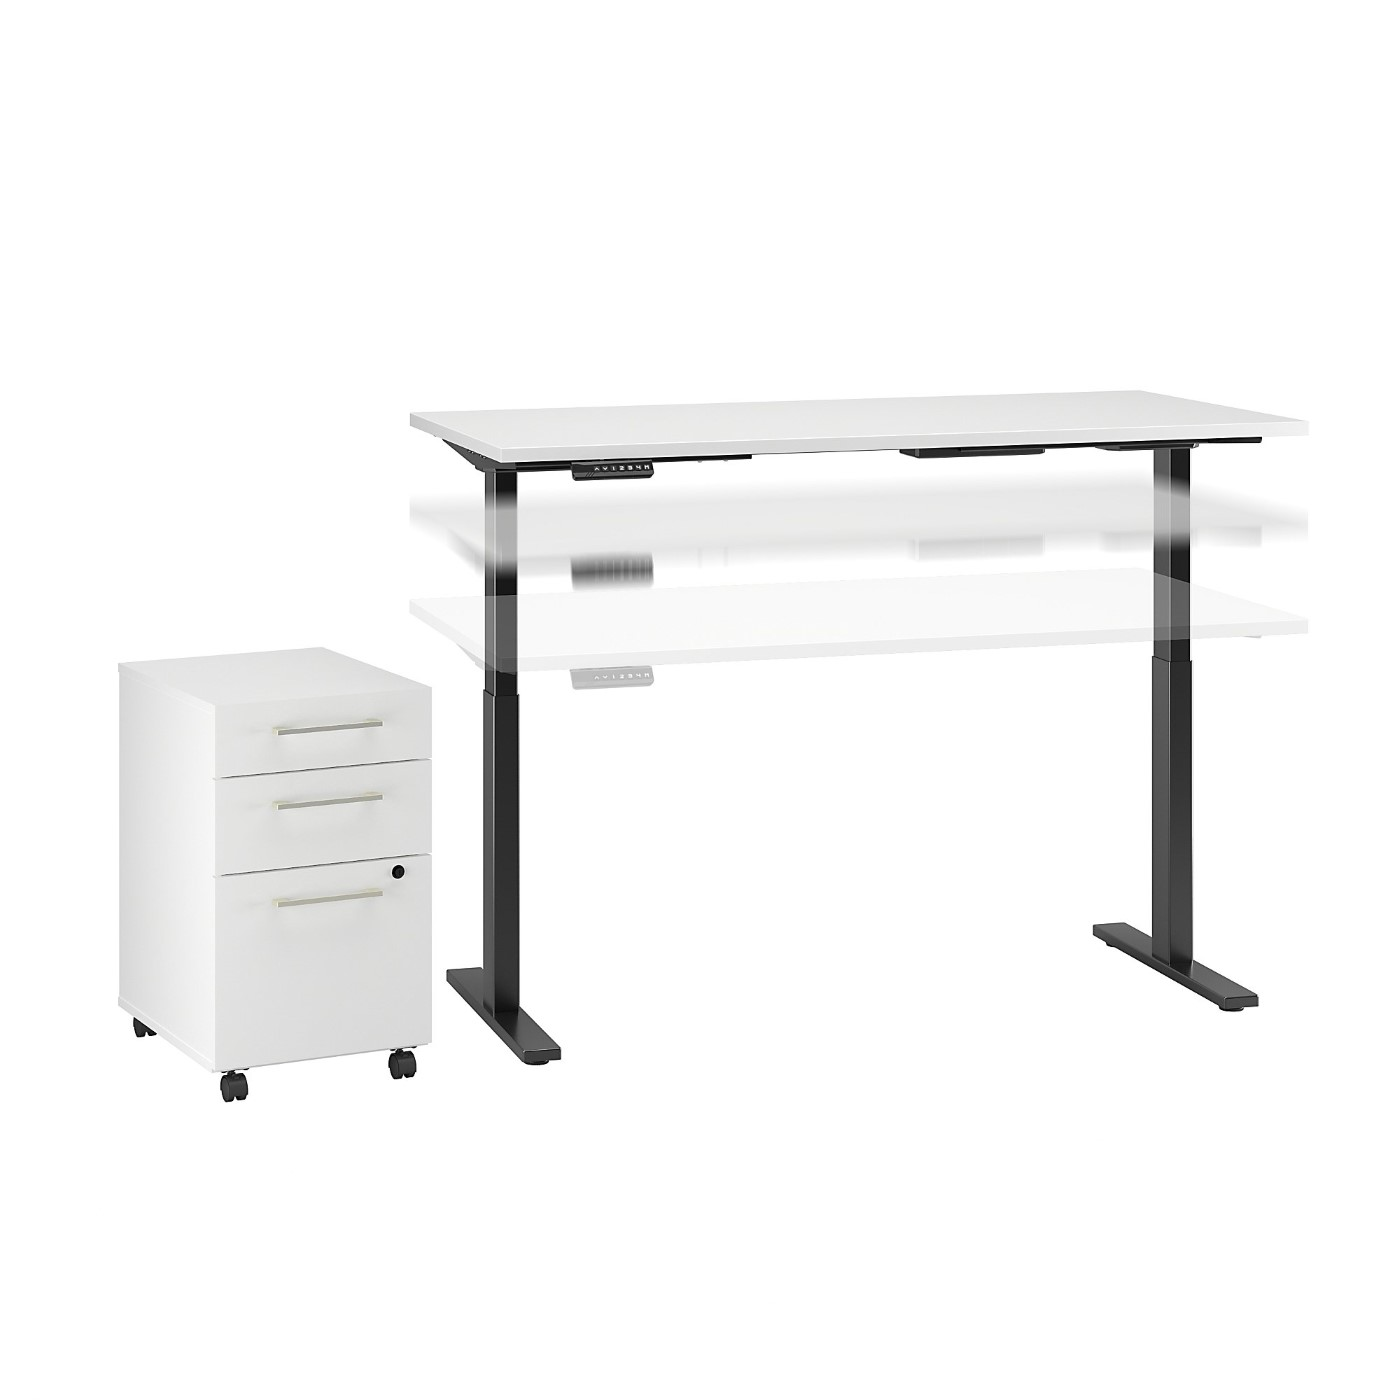 MOVE 60 SERIES BY BUSH BUSINESS FURNITURE 72W X 30D HEIGHT ADJUSTABLE STANDING DESK WITH STORAGE. FREE SHIPPING